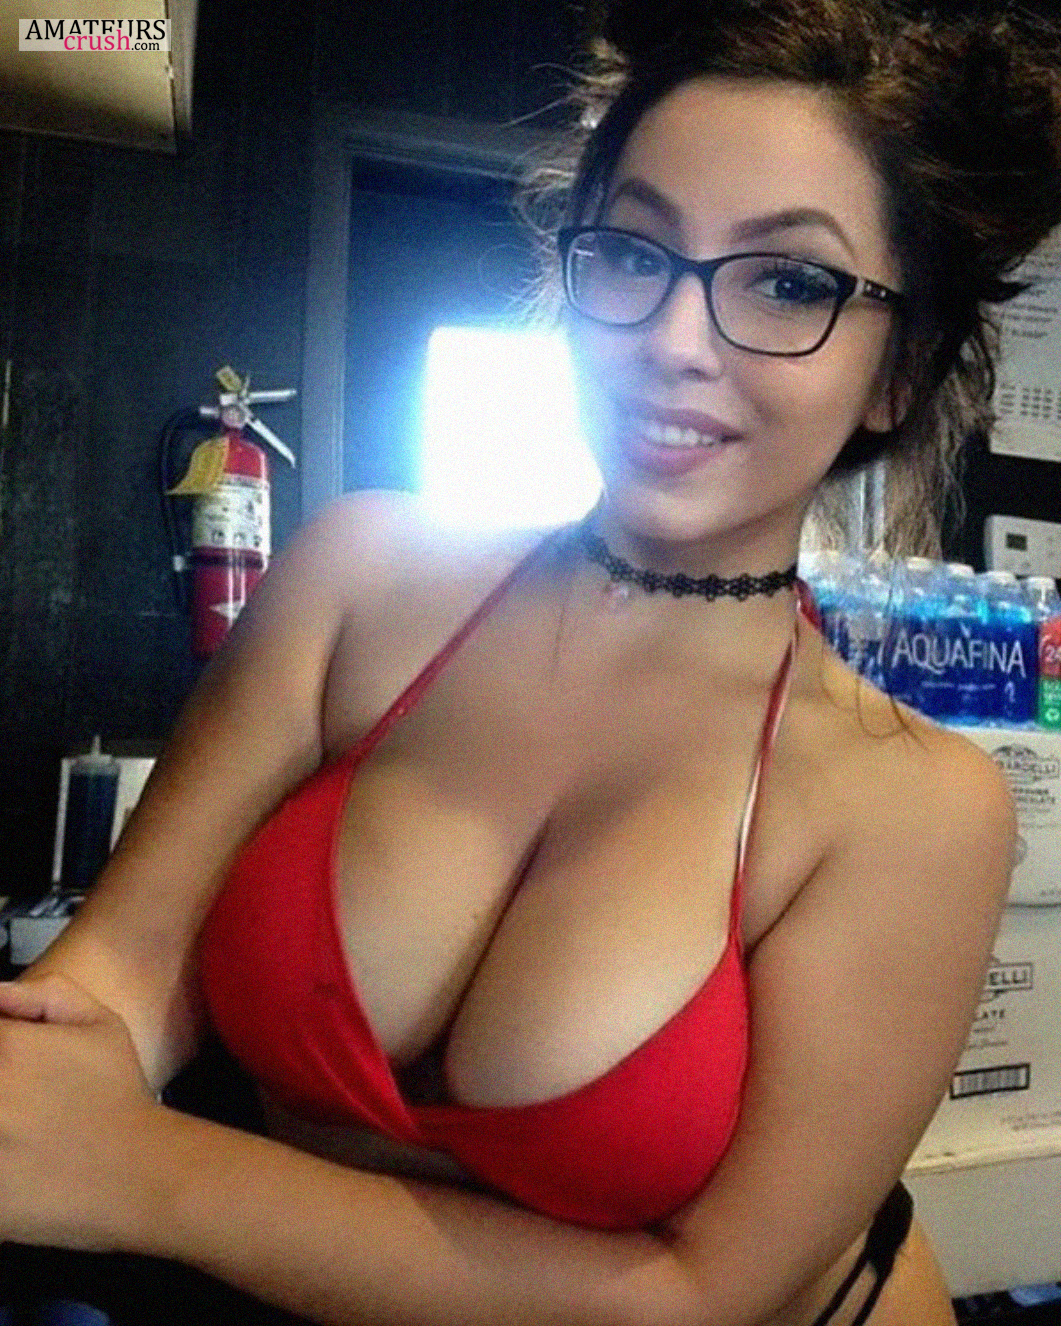 Super Sexy Barista Girl With Glasses In Red Bra And Showing Her Big Breasts Cleavage